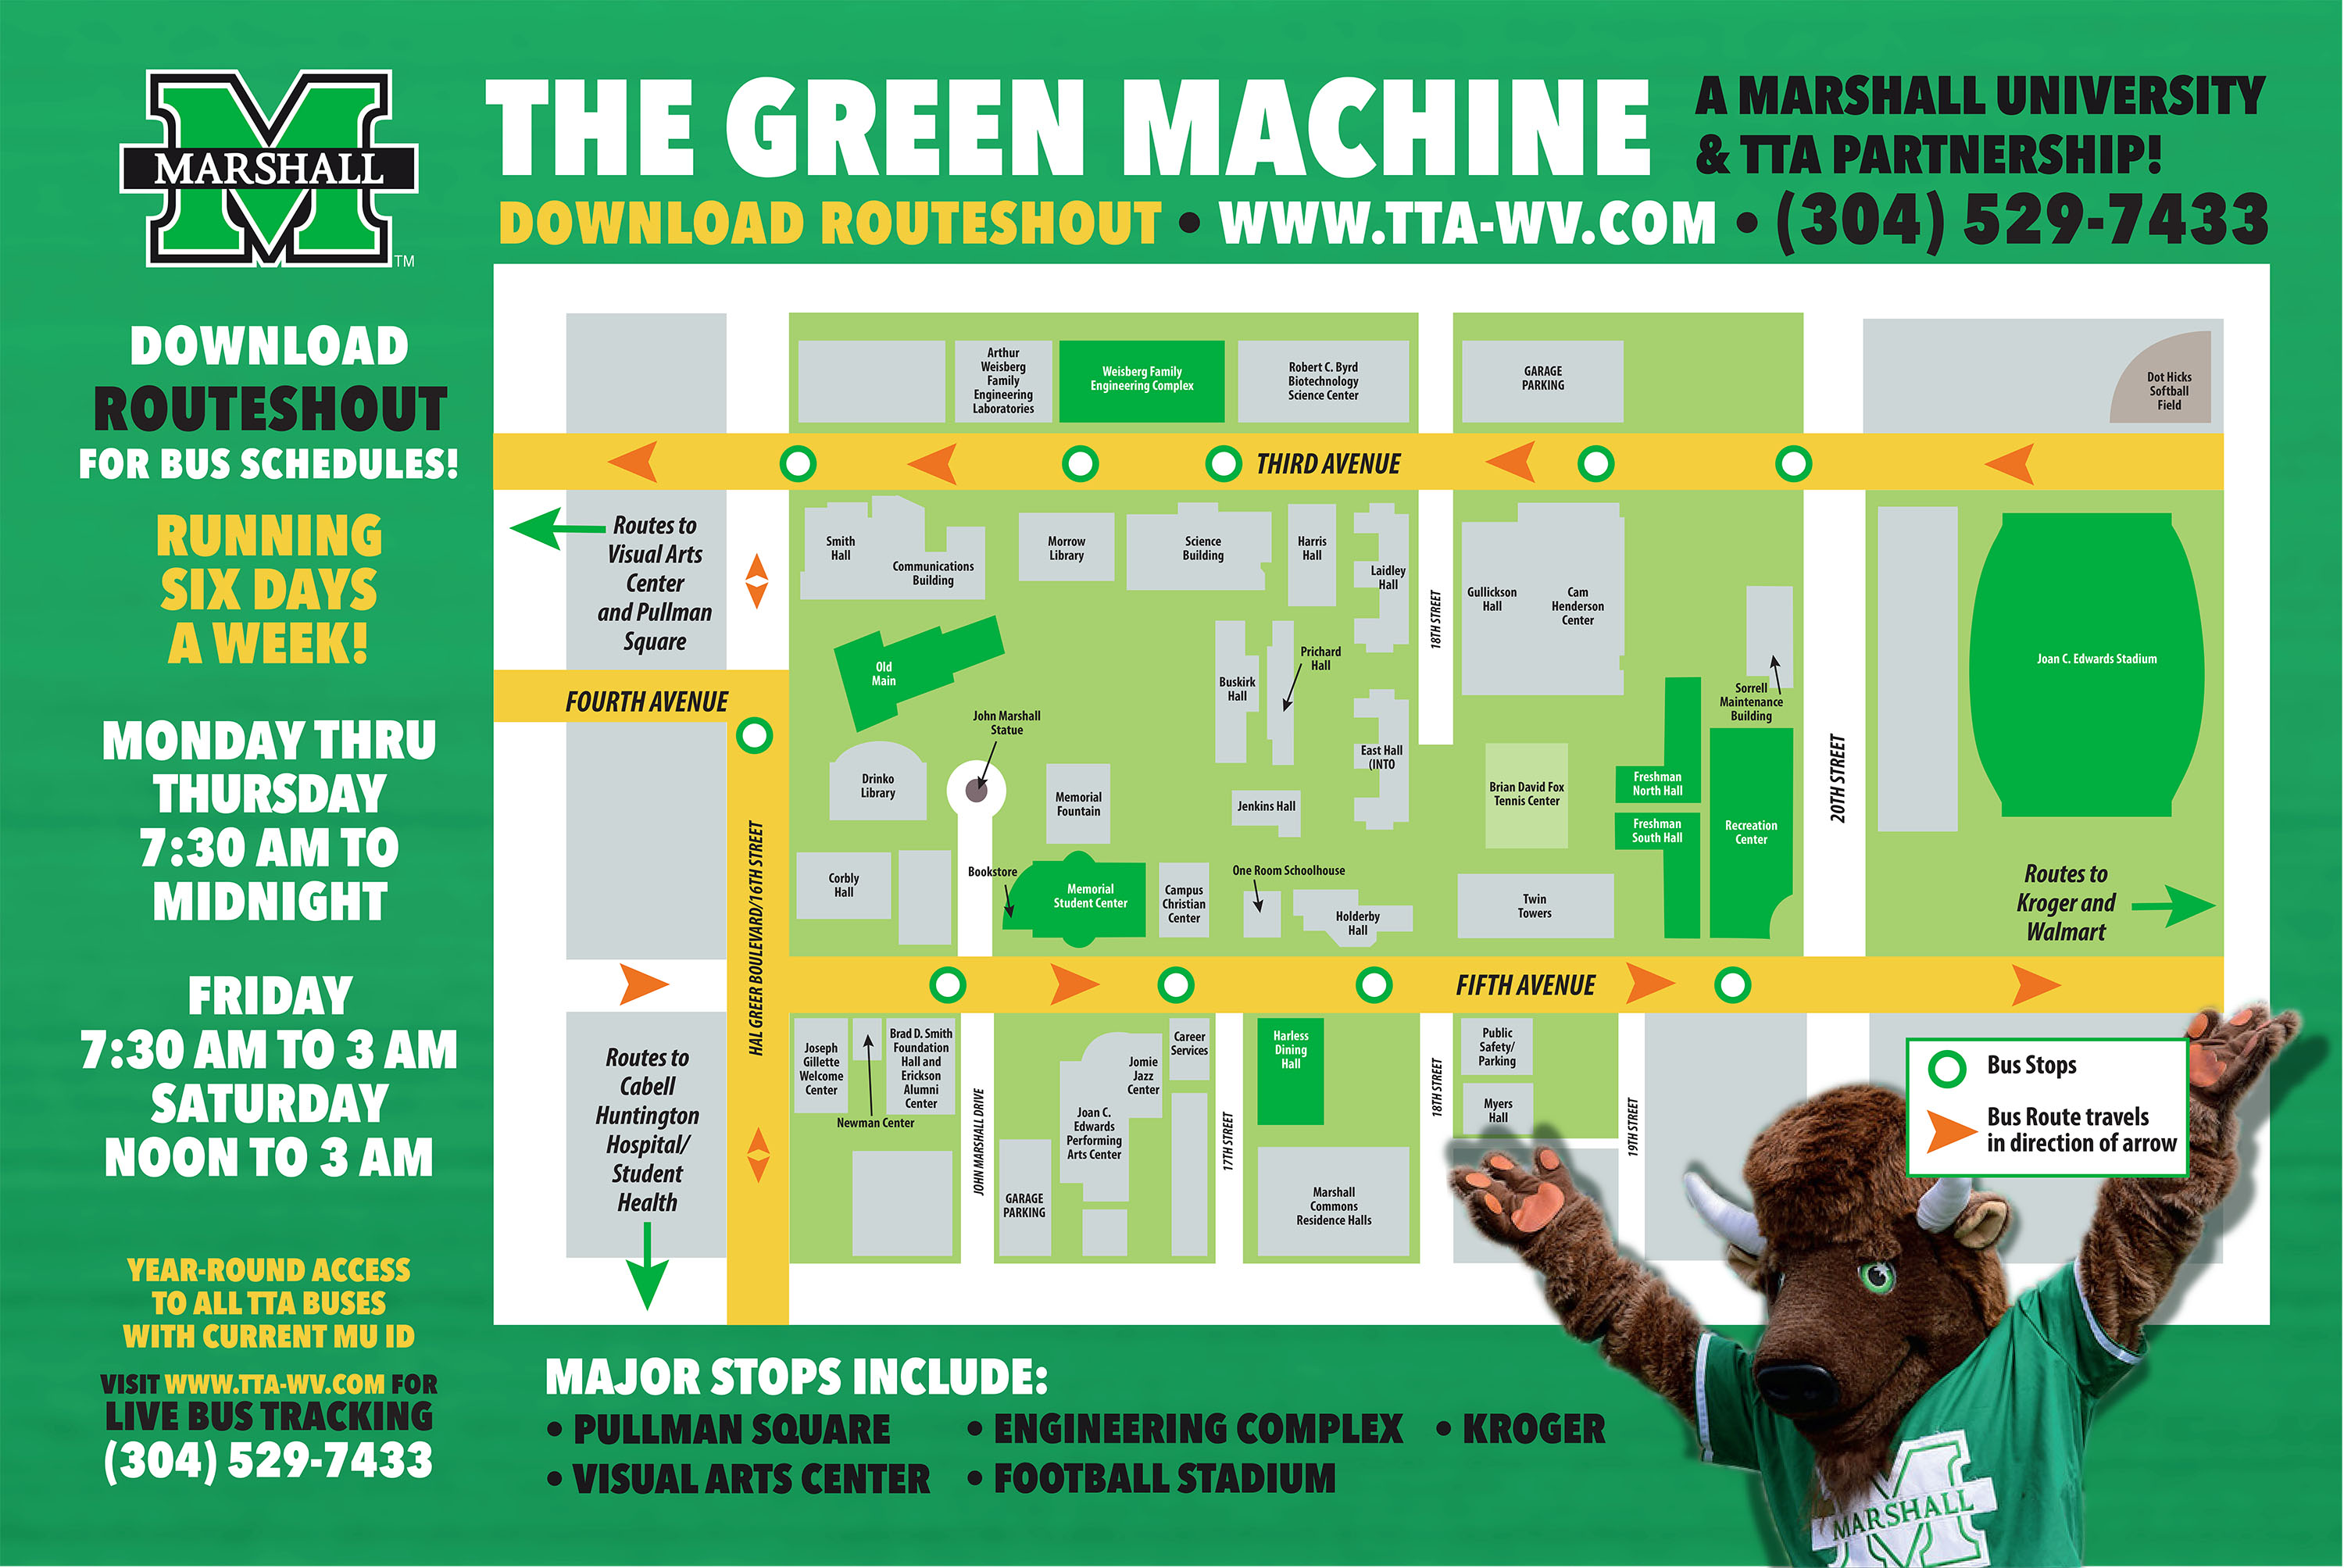 Green Machine, Marshall Bus, Safe, Safety, TTA, Tri-State Transit Authority, Ride